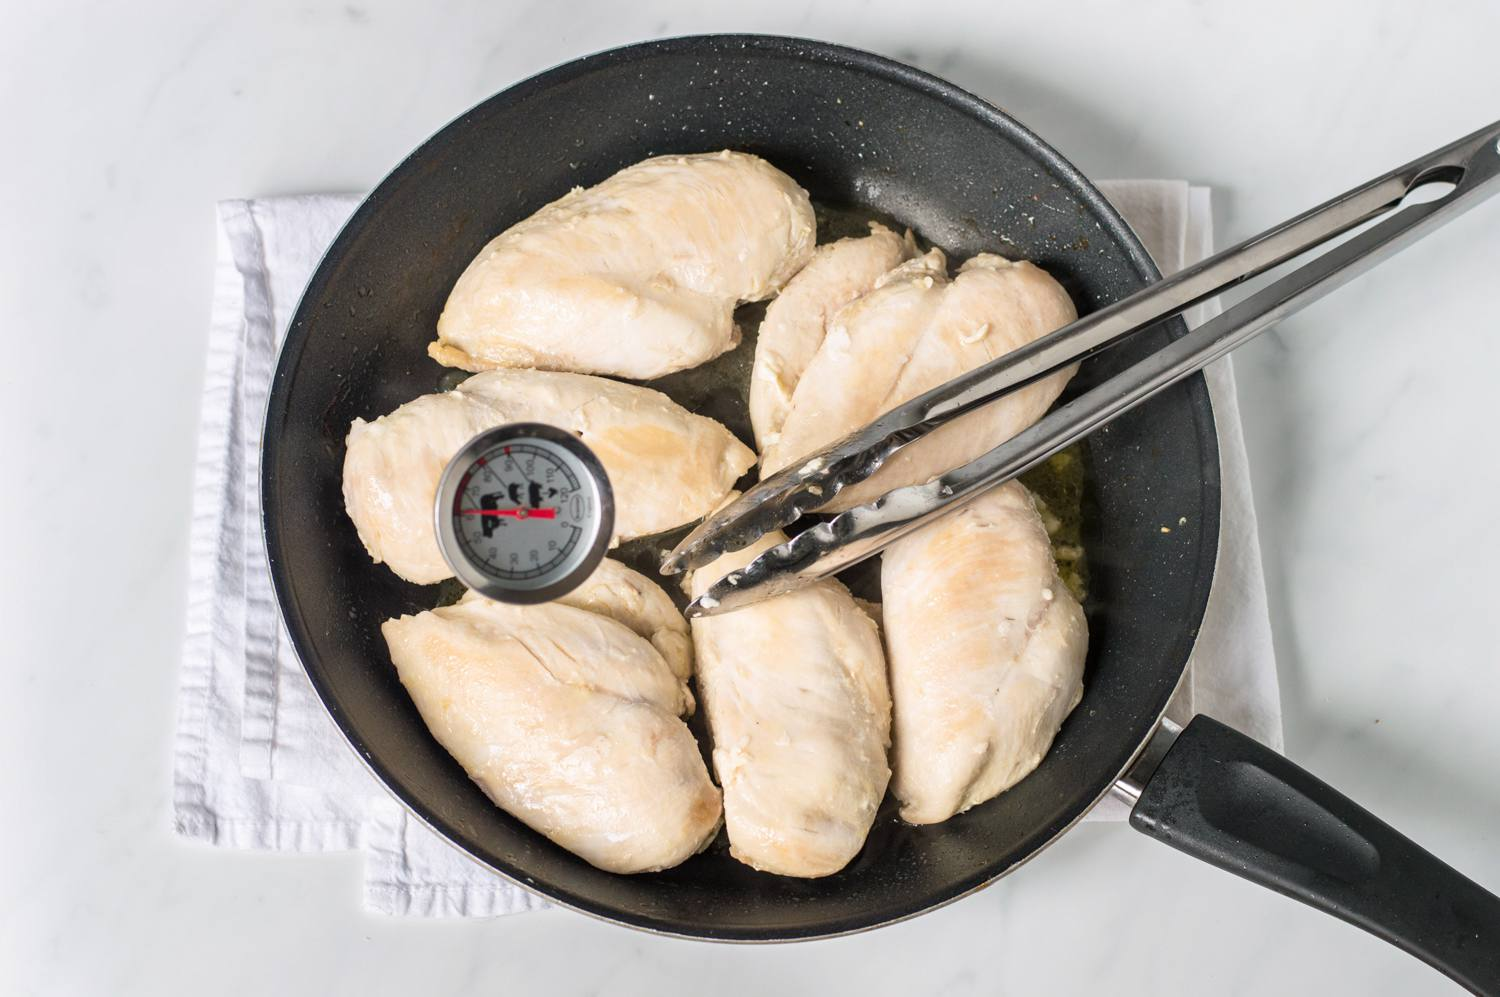 Cooking chicken breasts in skillet